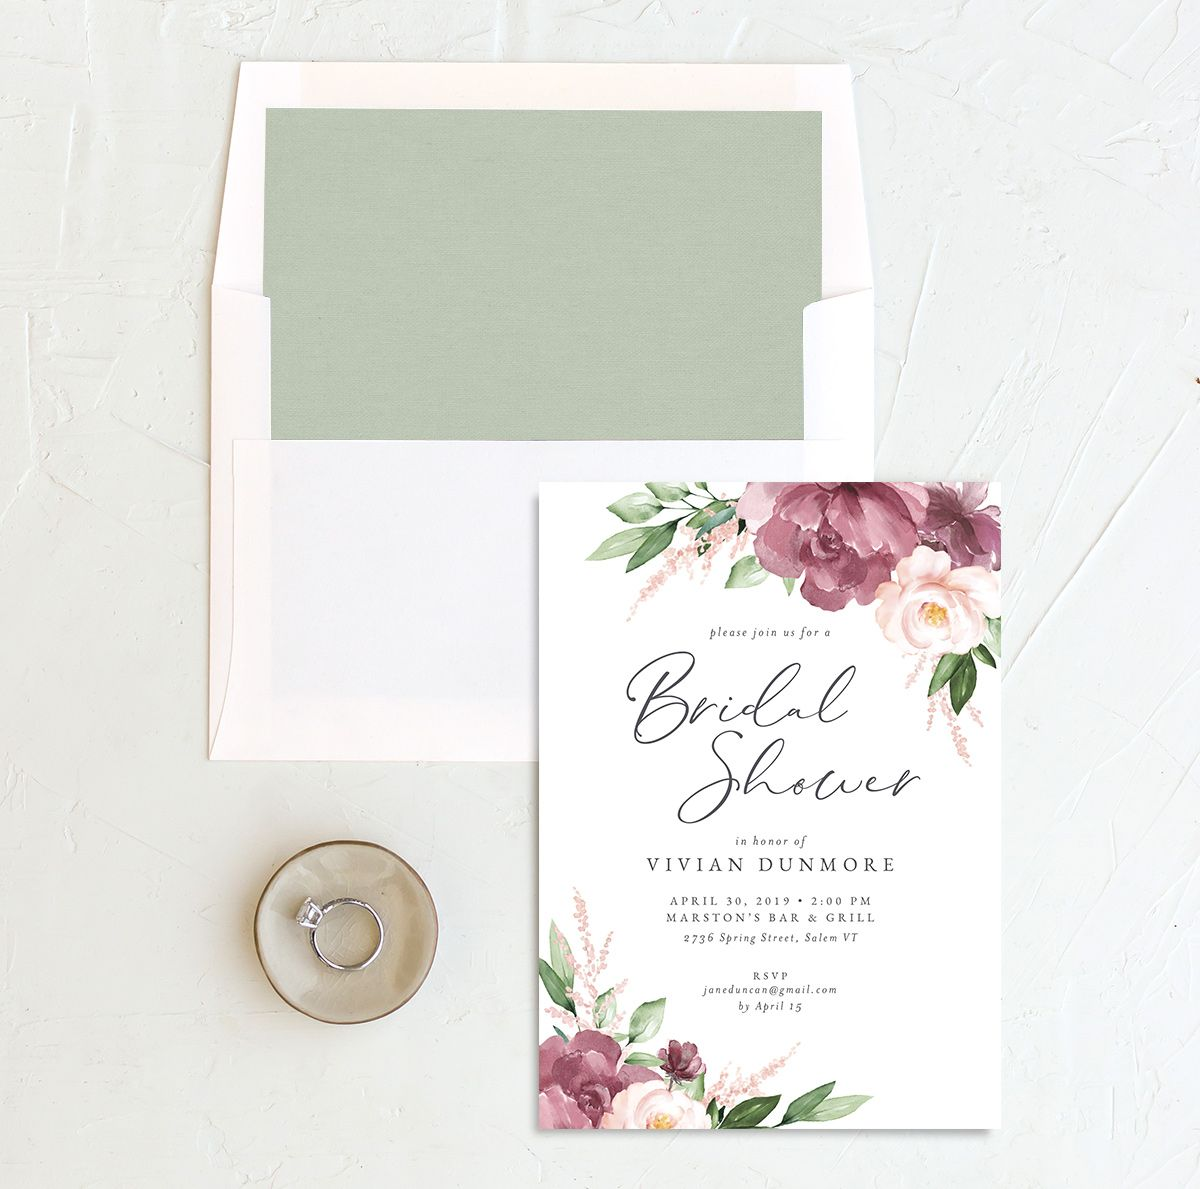 Beloved Floral Bridal Shower Invitation with DIY liner in pink